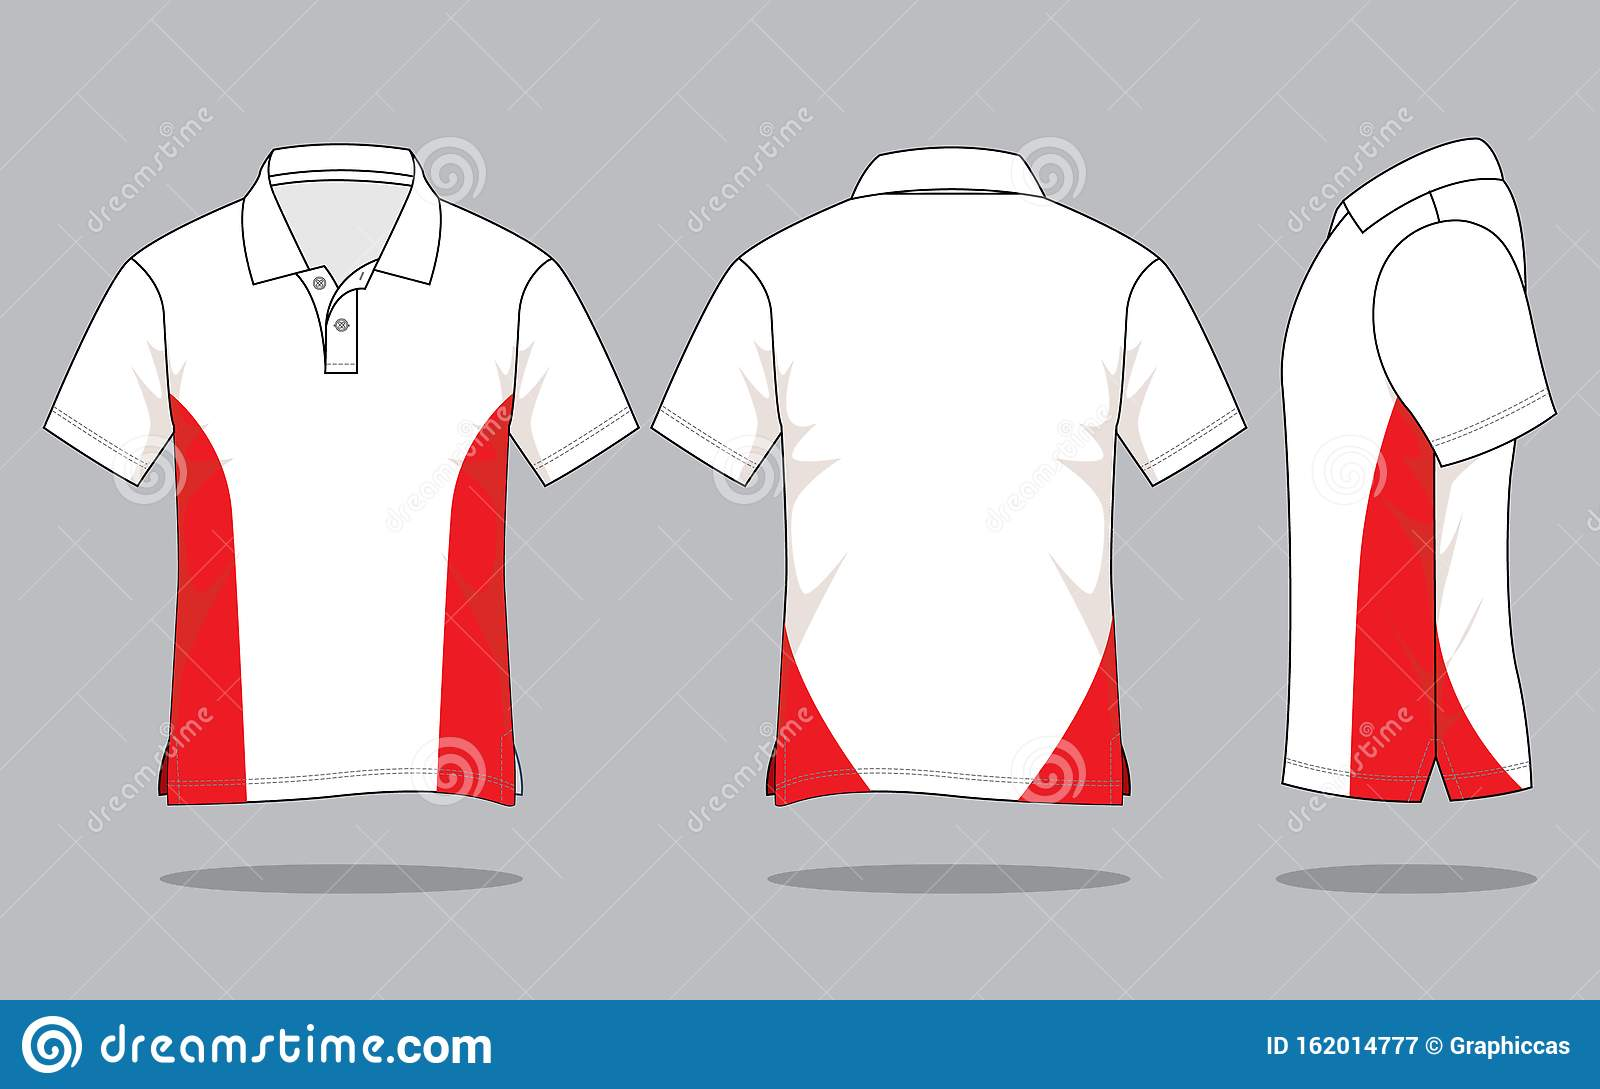 Polo Shirt Design Vector With White Red Colors Stock Illustration Illustration Of Graphics Colorful 162014777